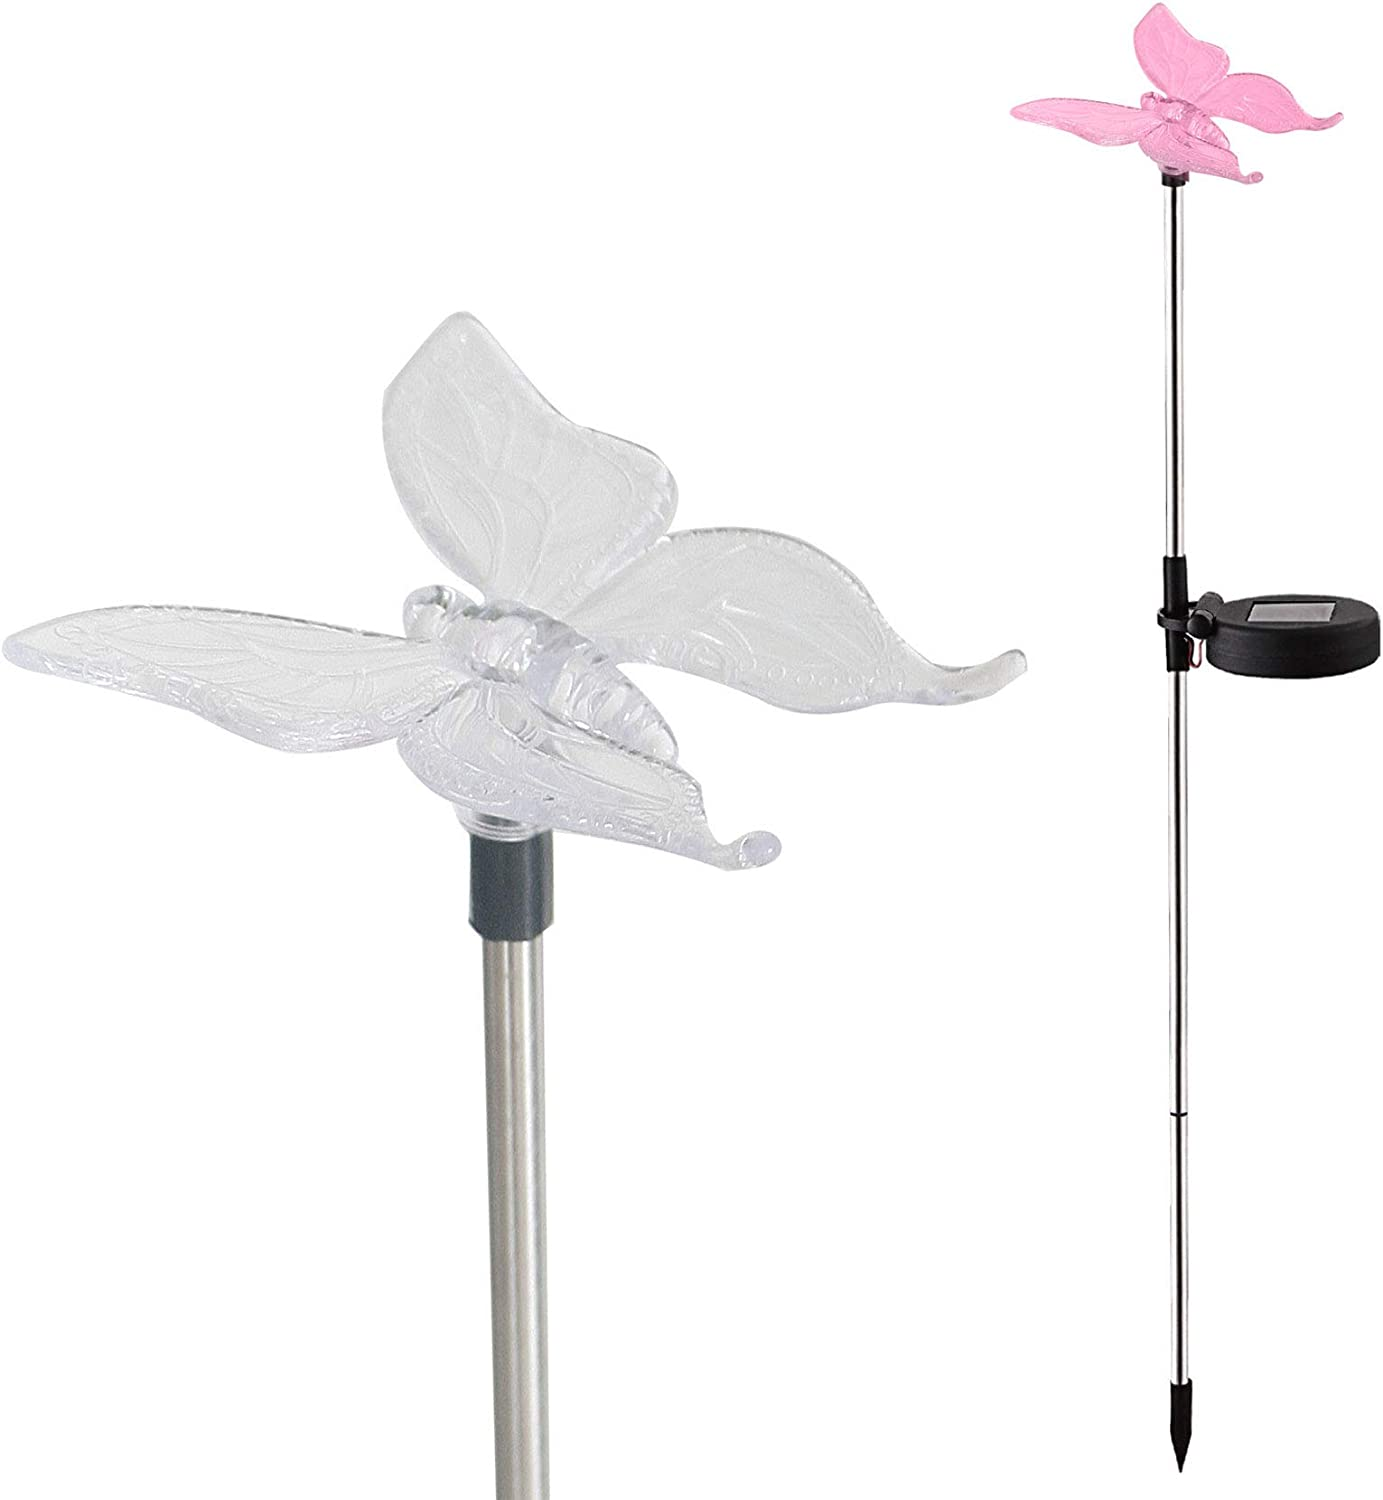 Solar Garden Stake Waterproof Outdoor Light with Vivid Color Charging Figurine –Butterfly LED Garden Landscape Lawn Lamp for Flower Beds Backyards Decoration, 1Pack